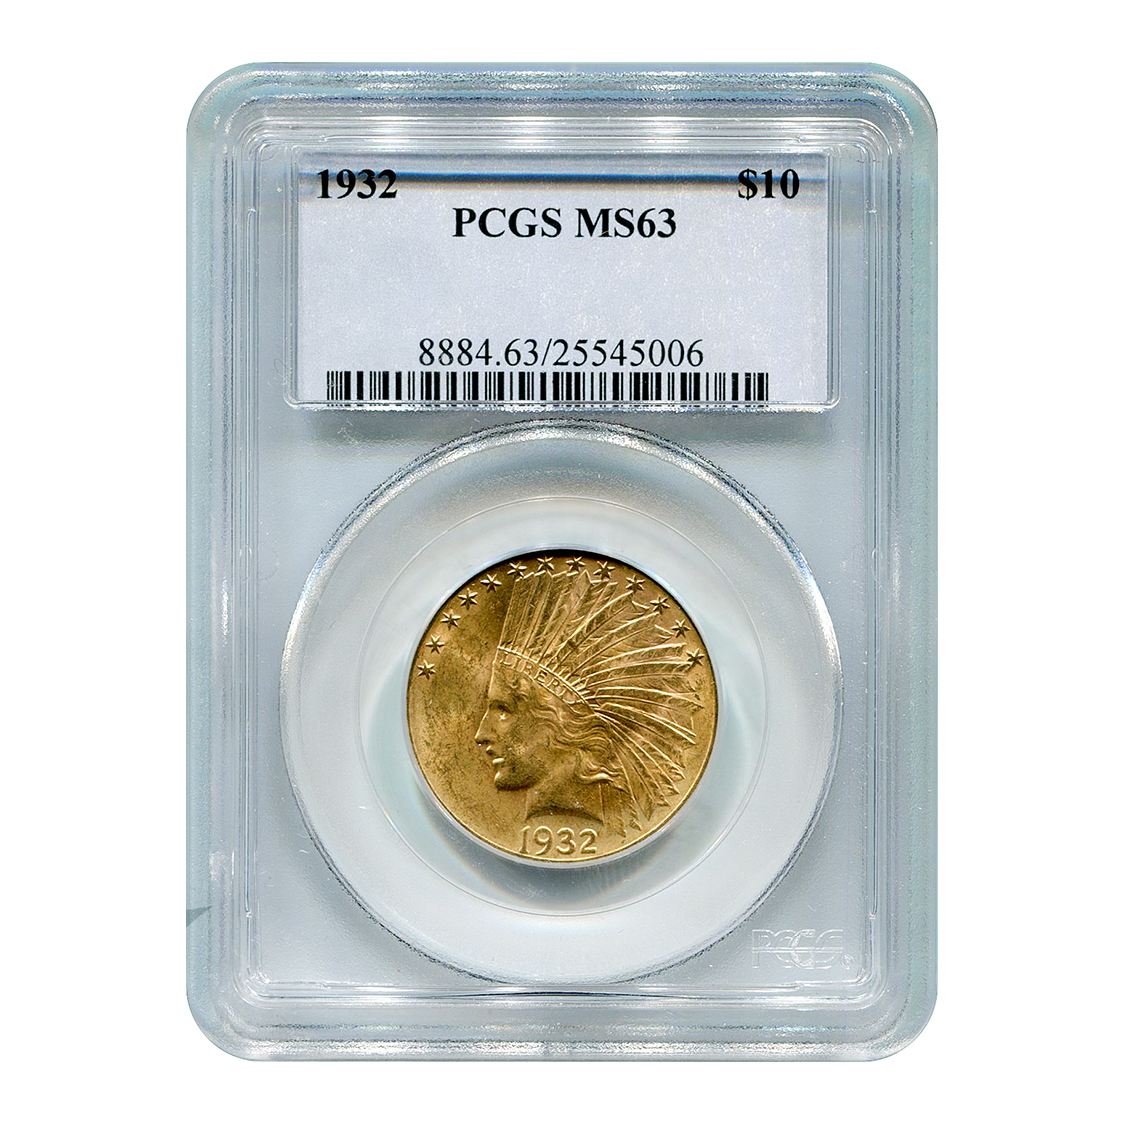 Certified US Gold $10 Indian 1932 MS63 PCGS